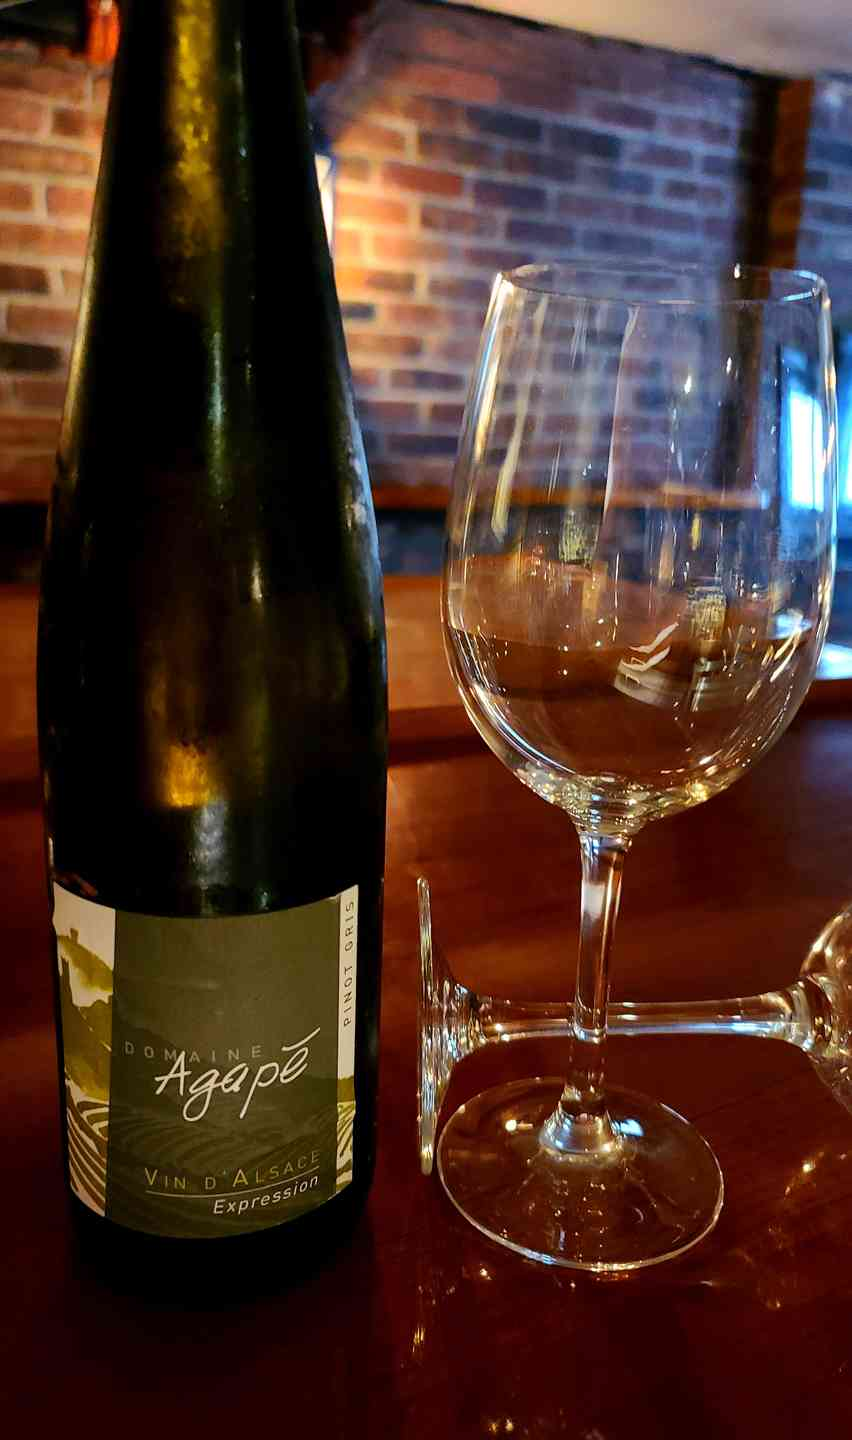 Pinot Gris, Domaine Agrape